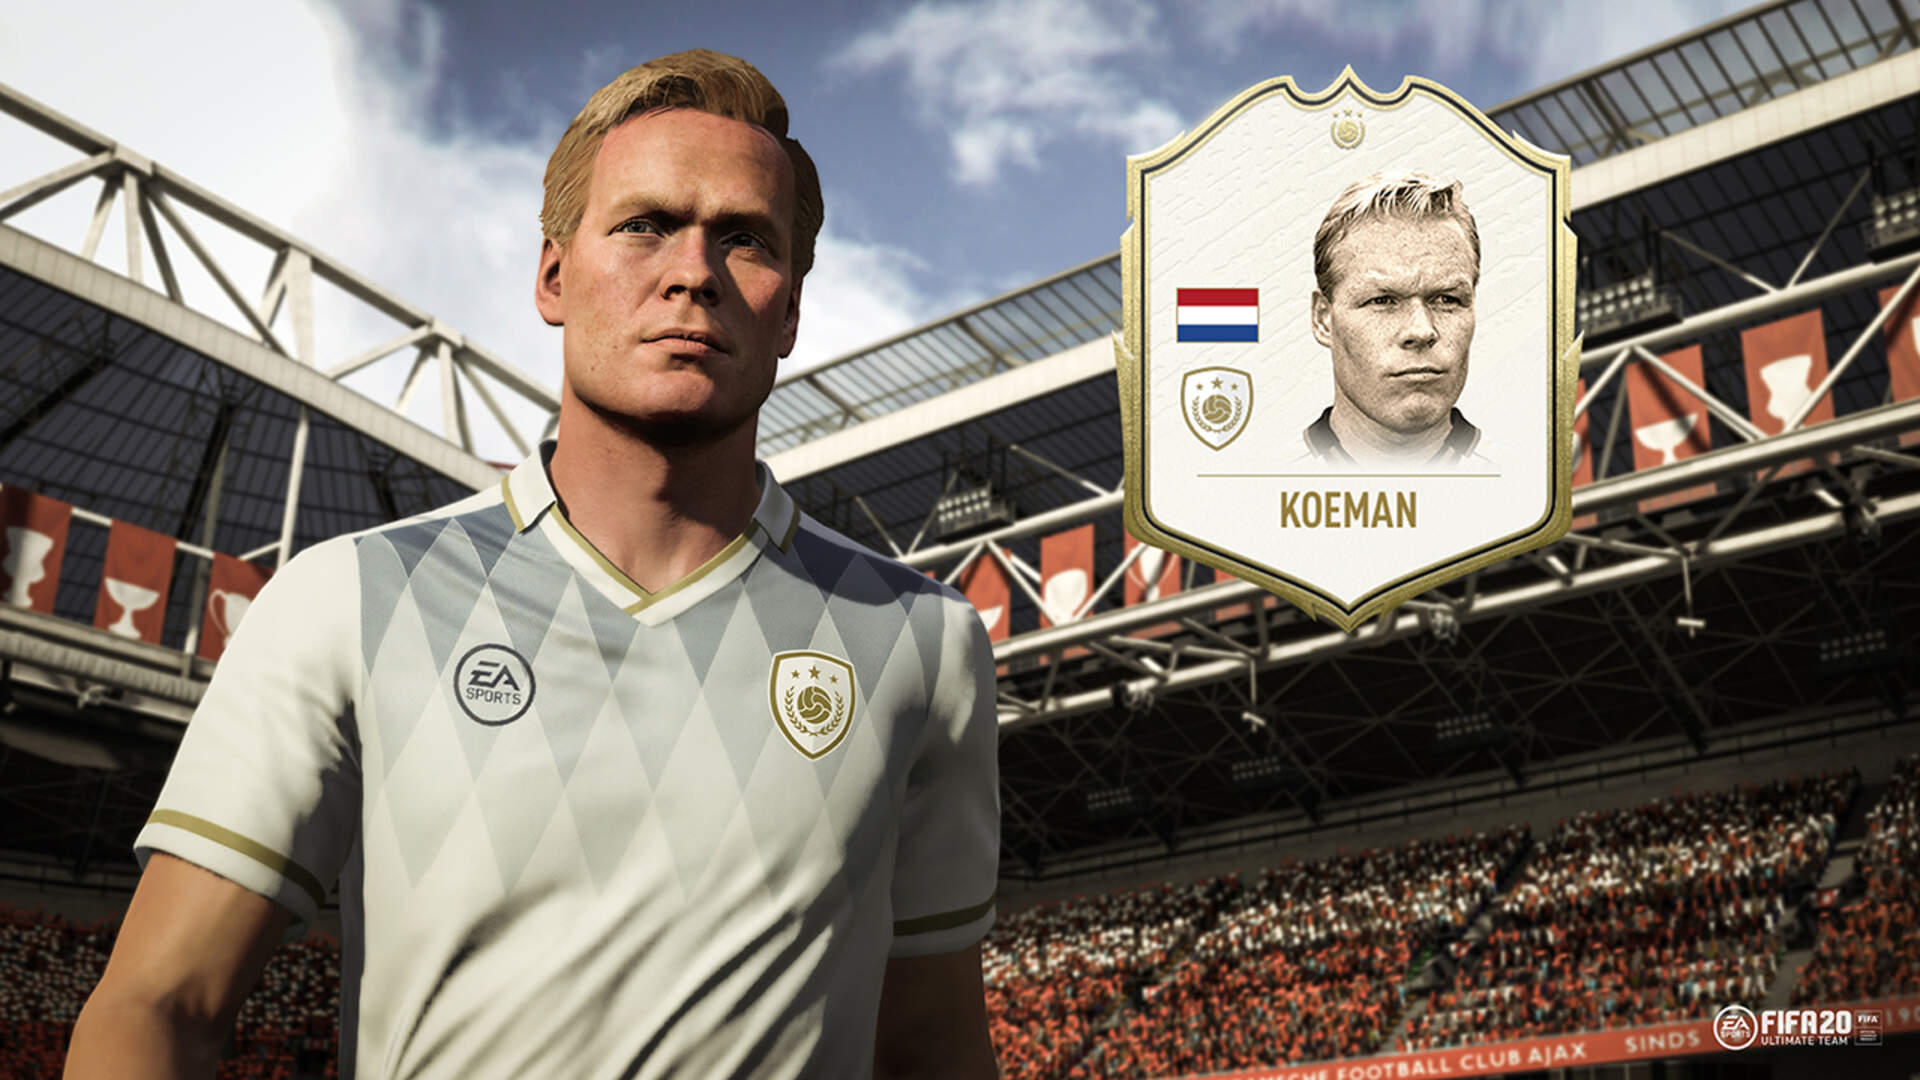 FIFA 20's Smurfing Problem Has Players Yearning For a Better Ranking System for Division Rivals